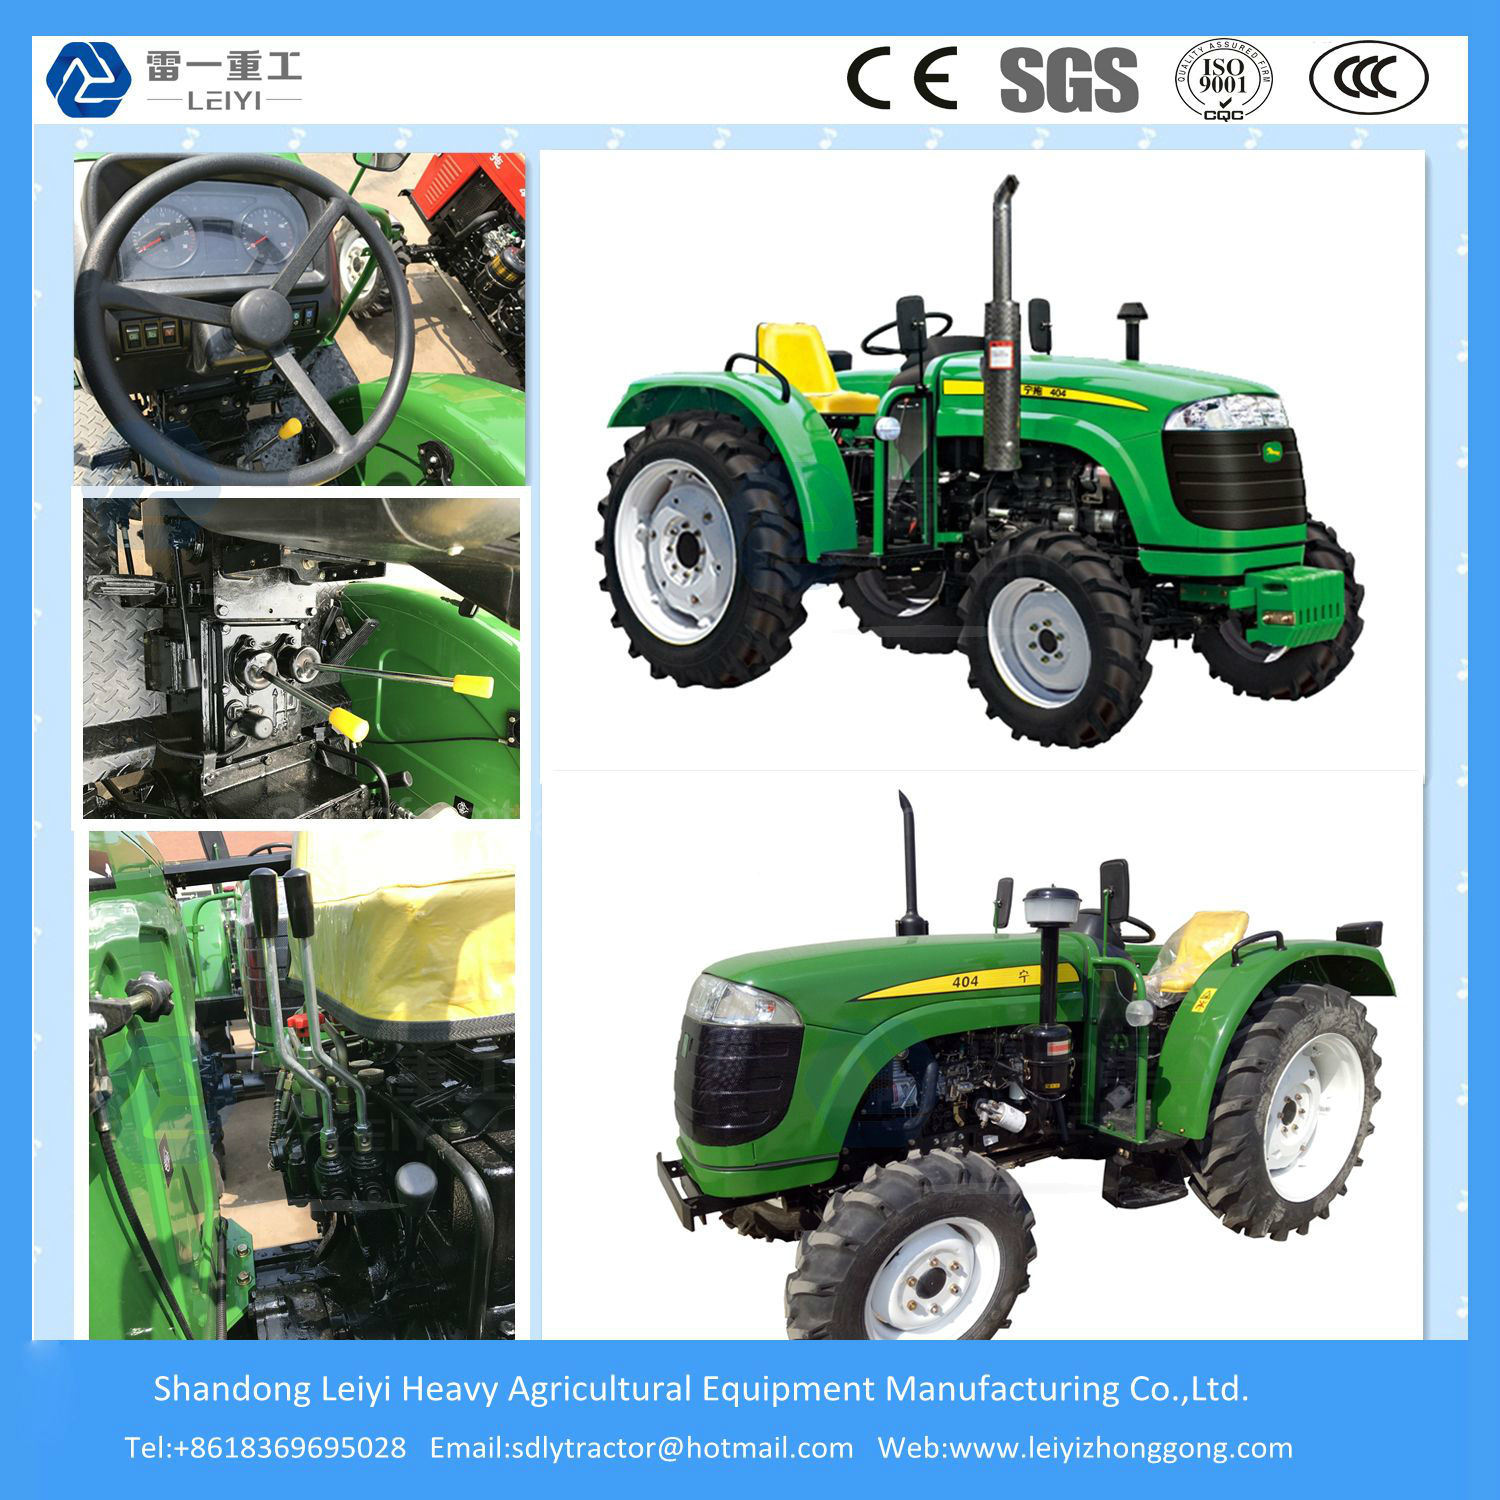 4WD Wheel Farming 40/48/55HP Mini/Agricultural/Compact/Small/Diesel Farm/Garden Tractor